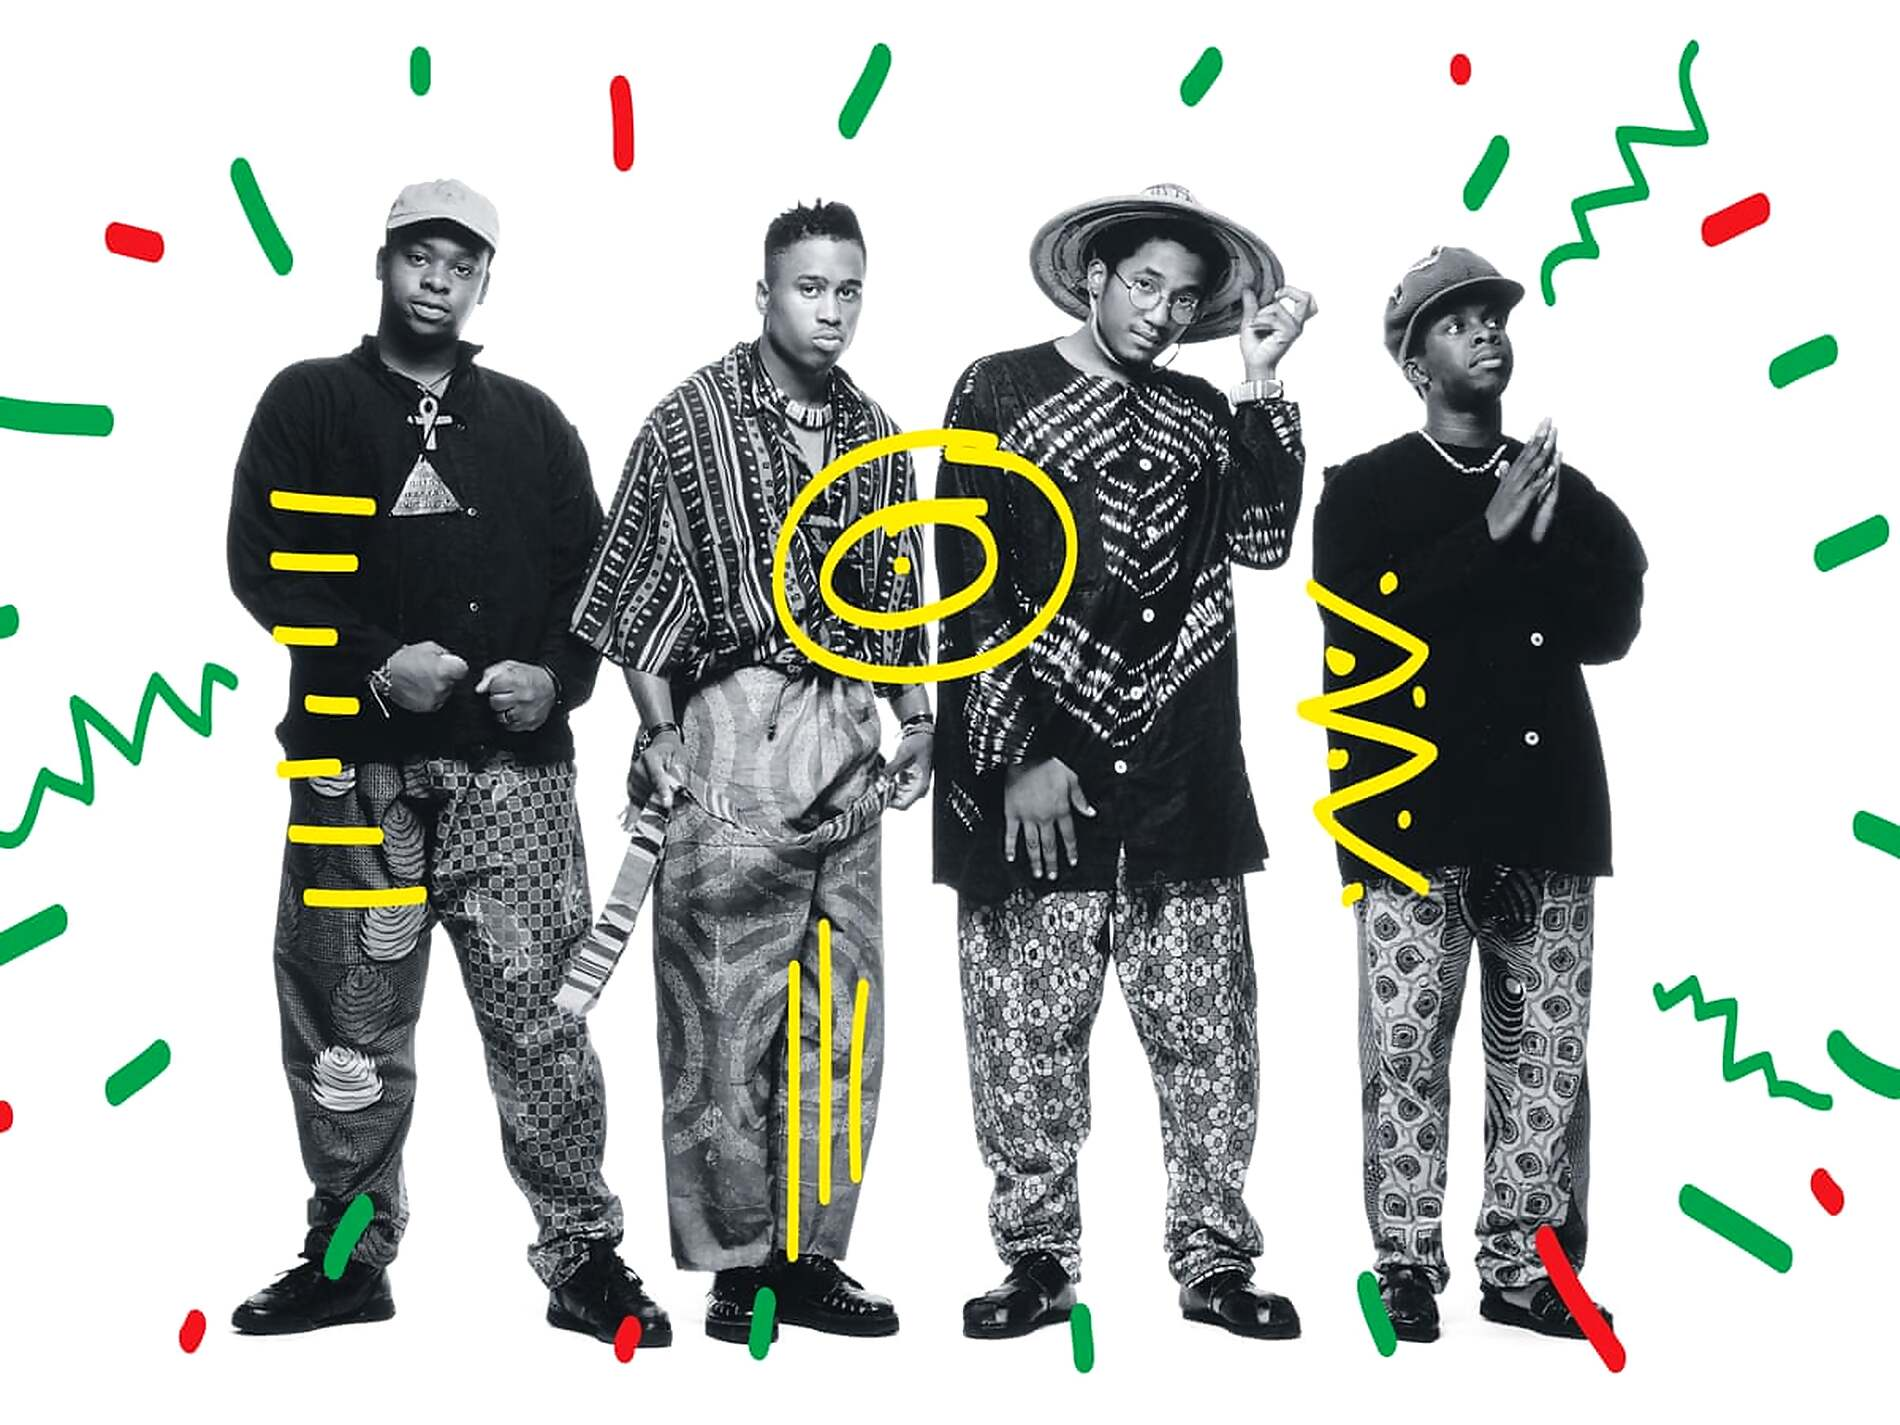 Beats, Rhymes & Life: An Introduction to A Tribe Called Quest